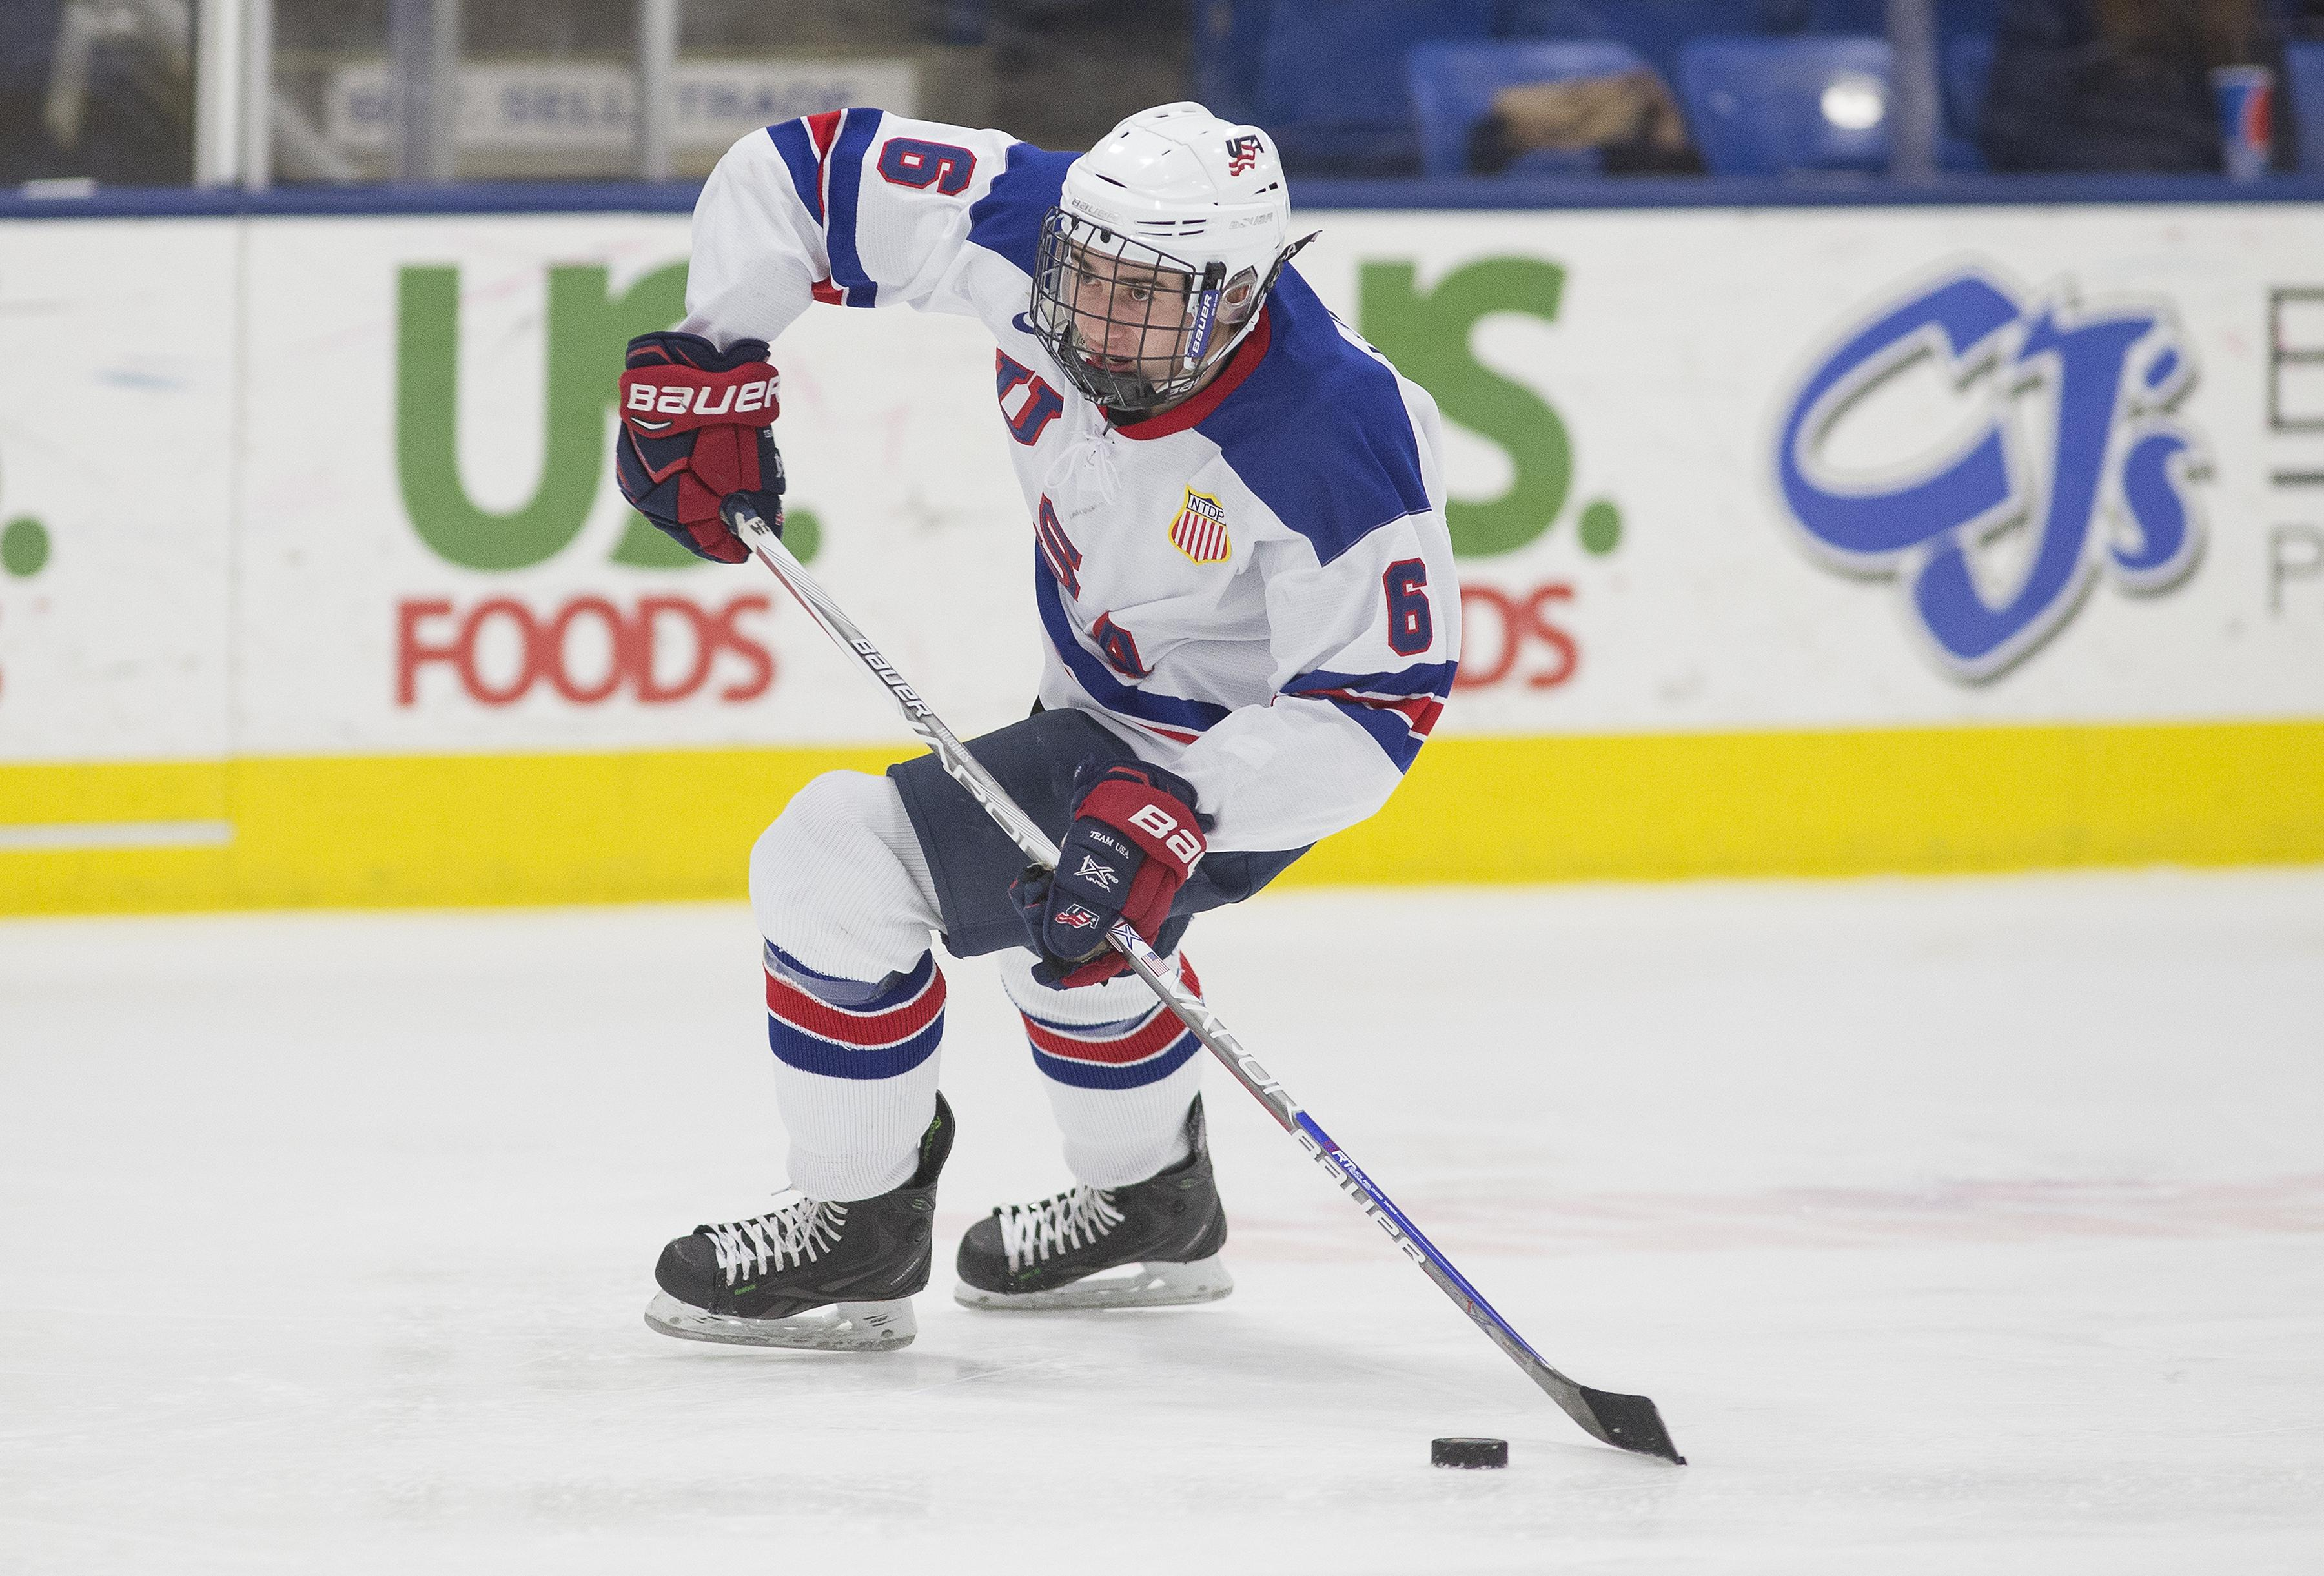 US National Junior Team Preliminary Roster Announced